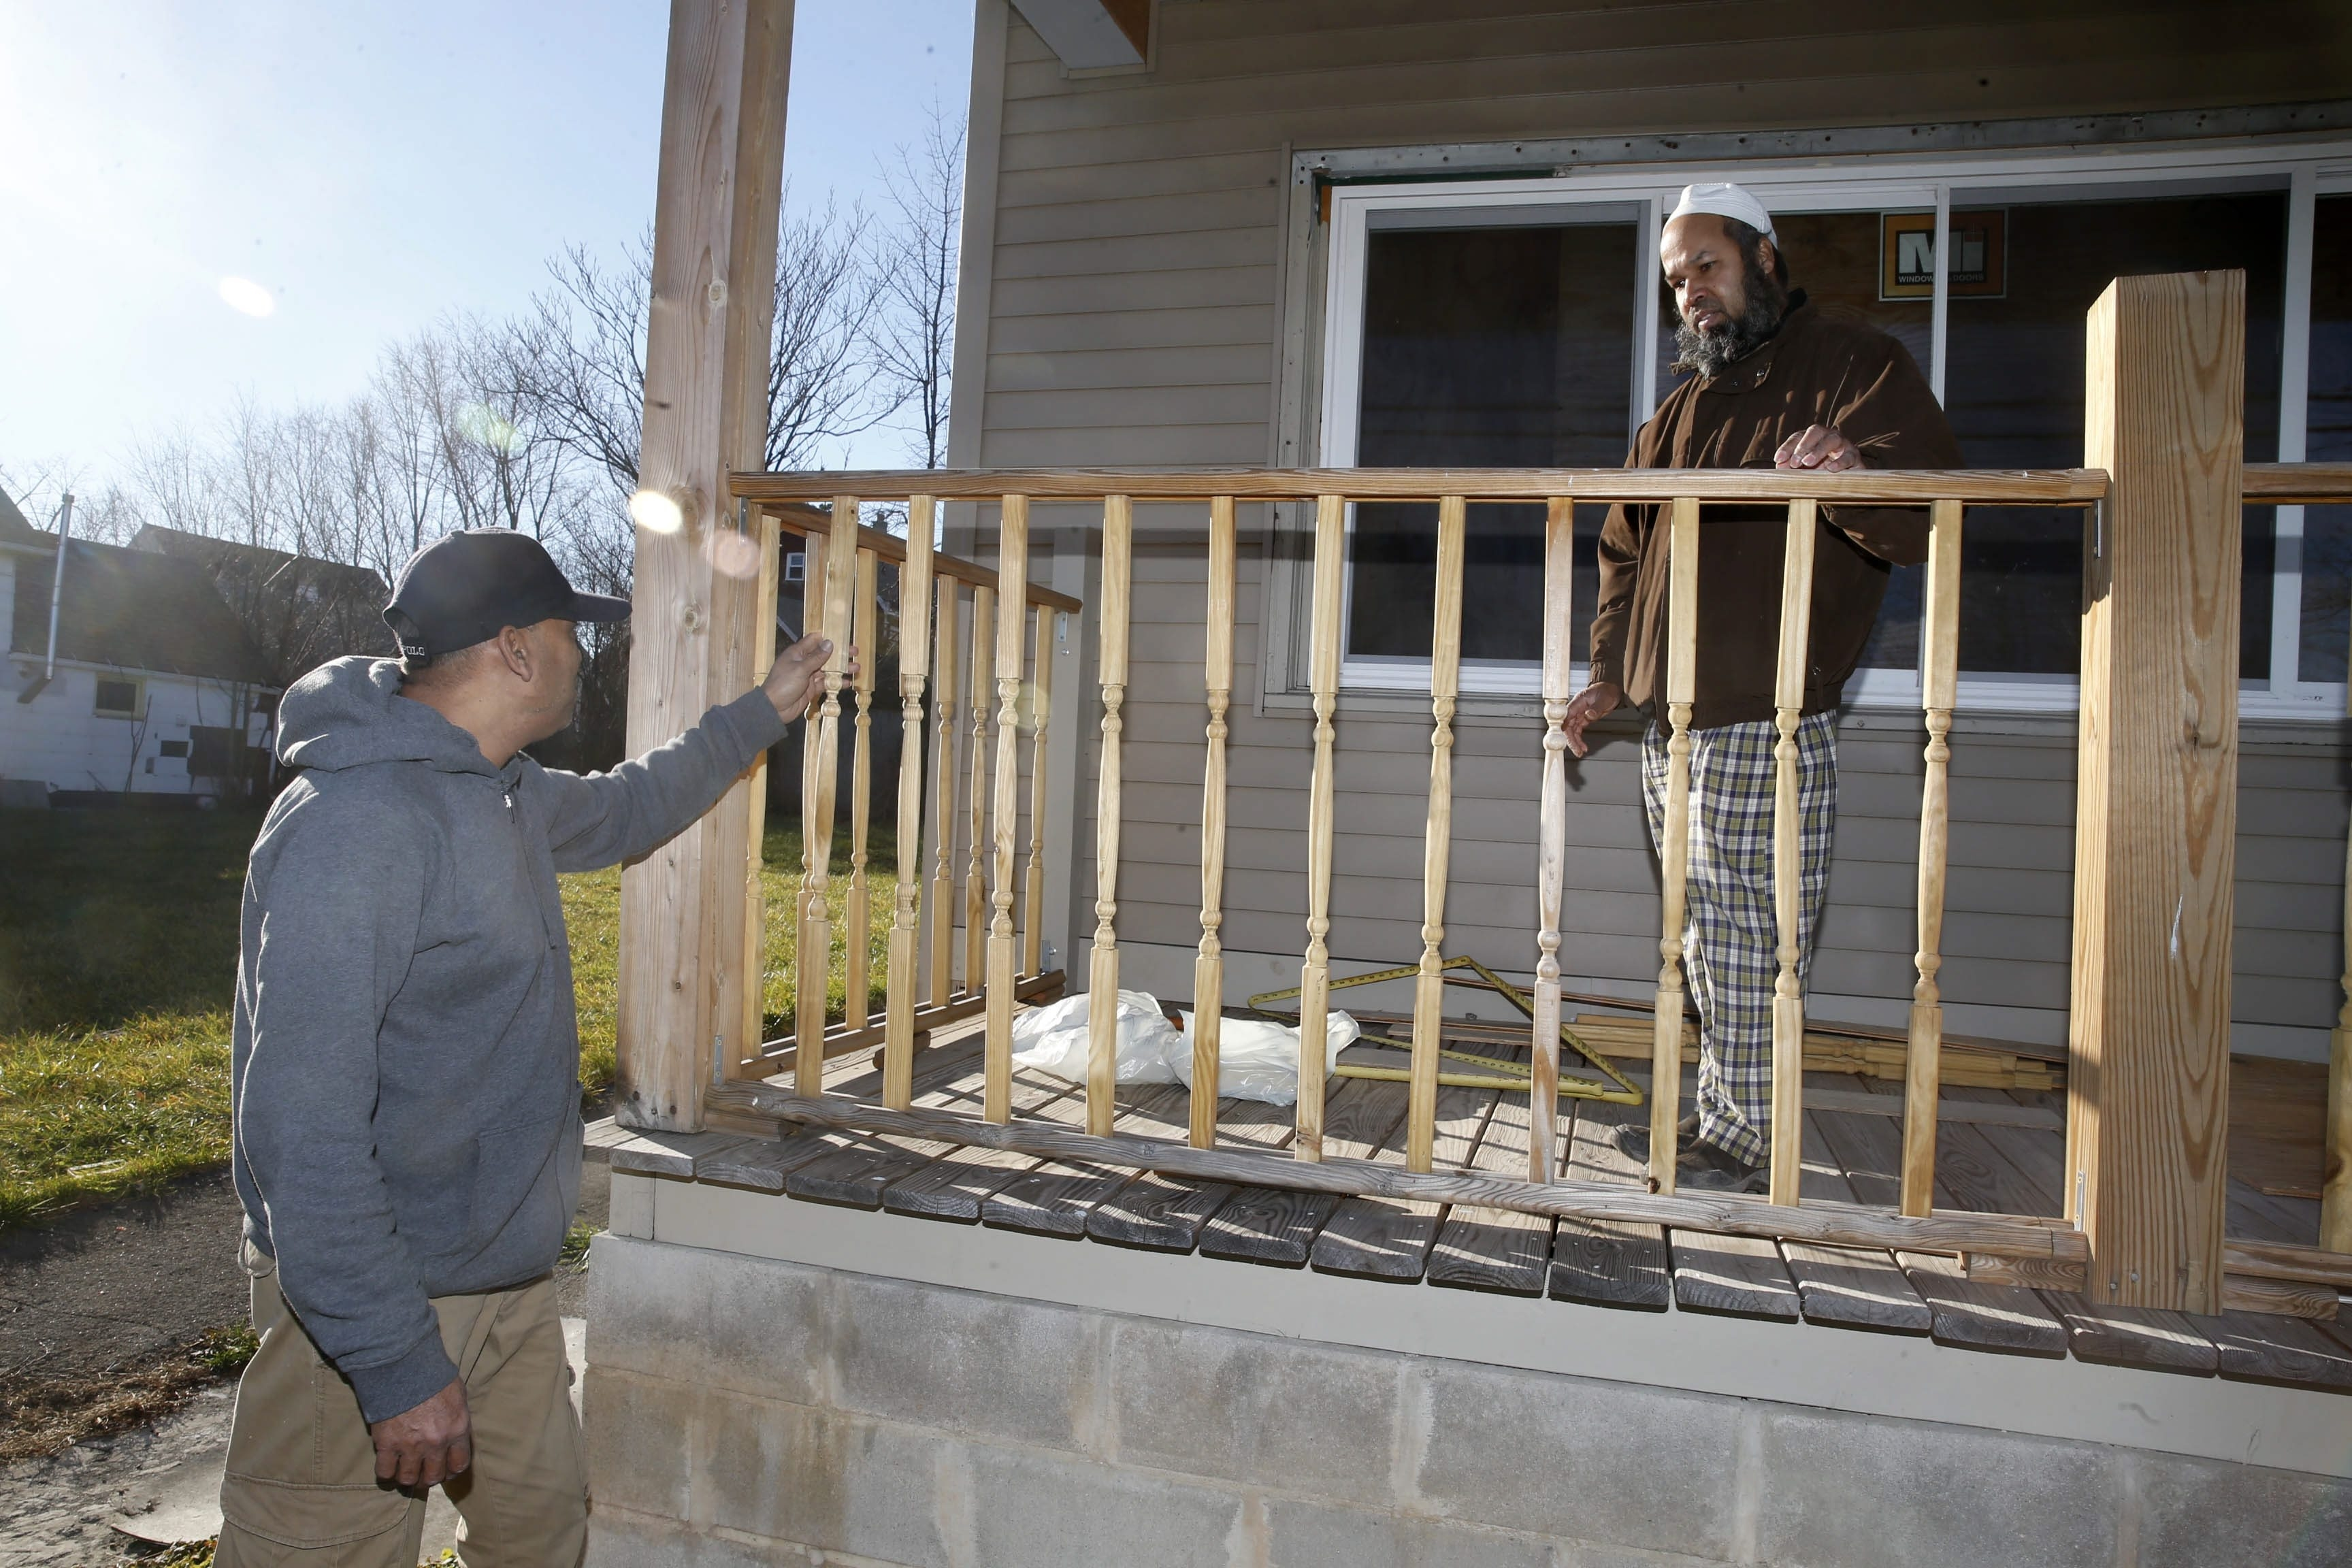 Bangladeshi native Sheikh Rahman, right, and his cousin, Juberi Hasan, work on the porch of a family member's house on Rother Street. Rahman says he moved to Buffalo from Queens in 2006 because of Buffalo's better real estate prices and quality of life. (Robert Kirkham/Buffalo News)